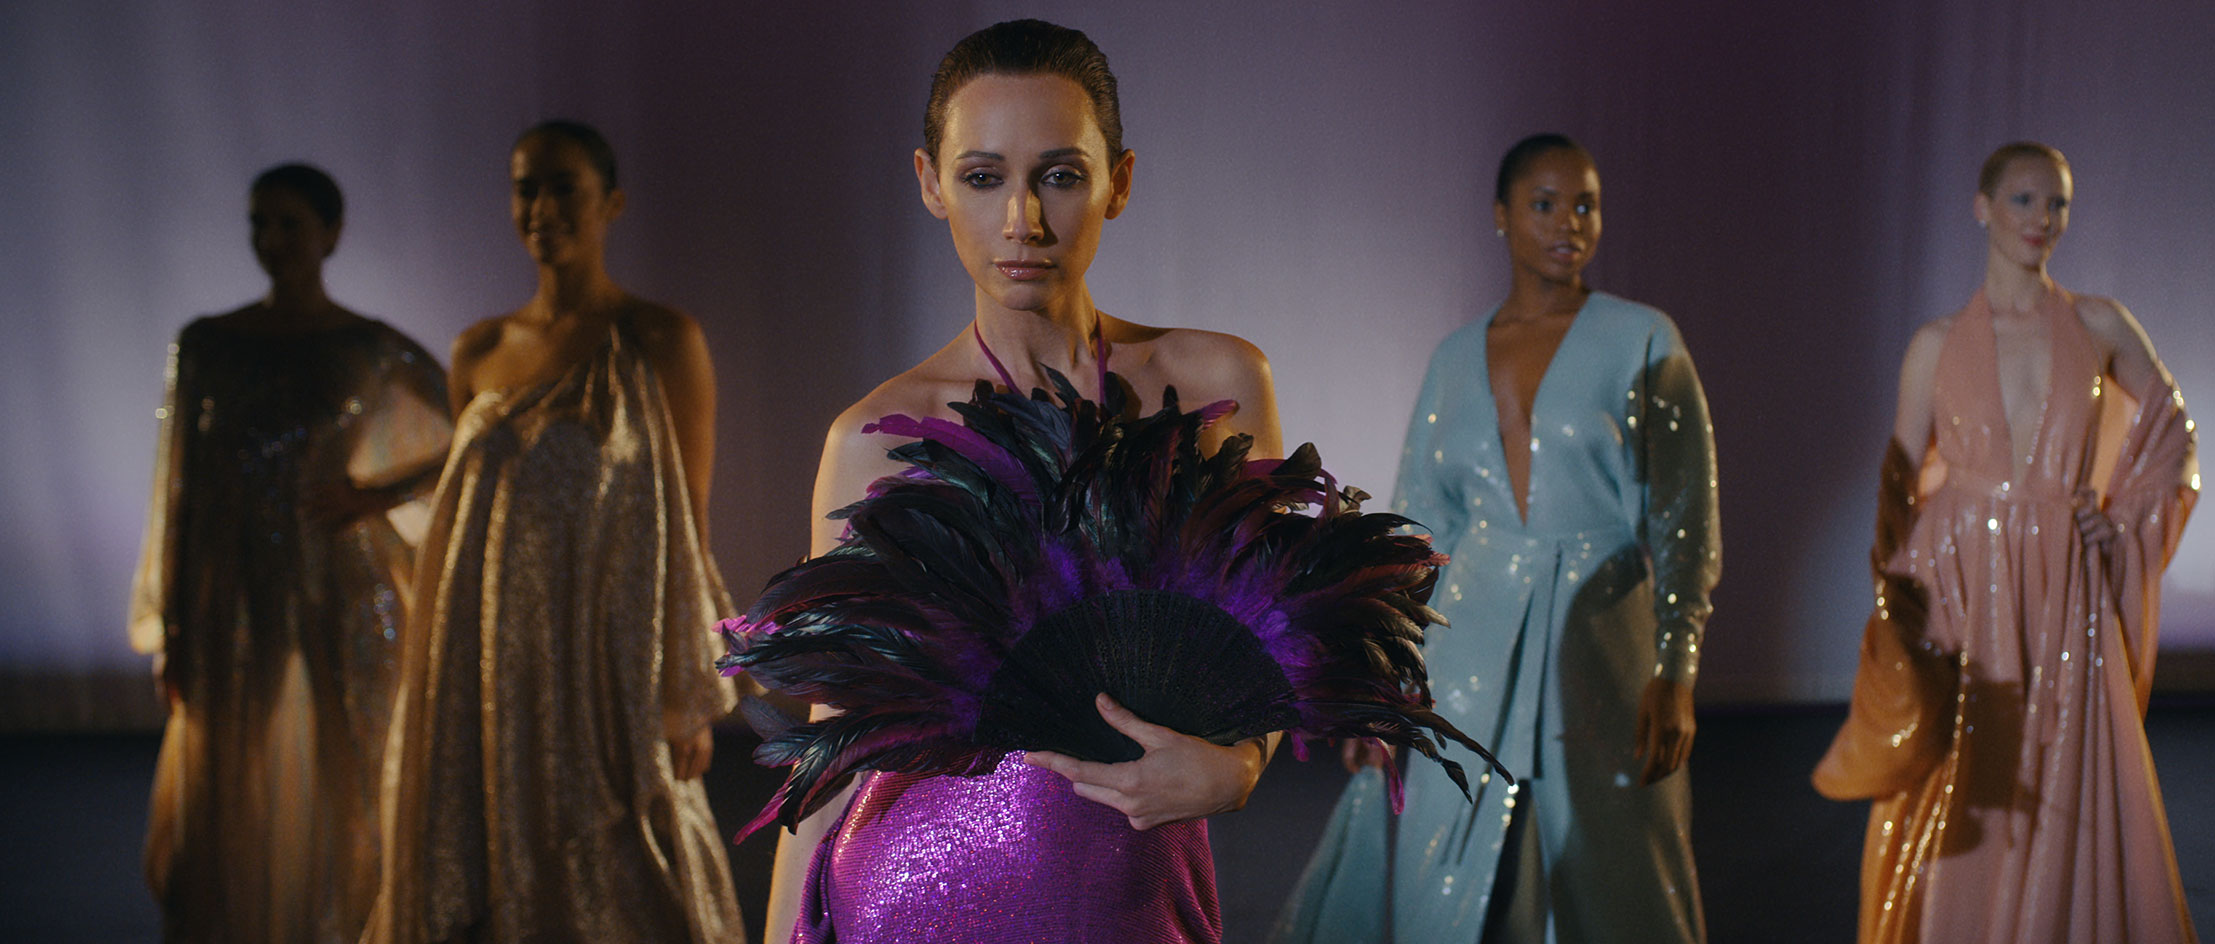 Netflix's Halston production still of the Palace of Versailles fashion show